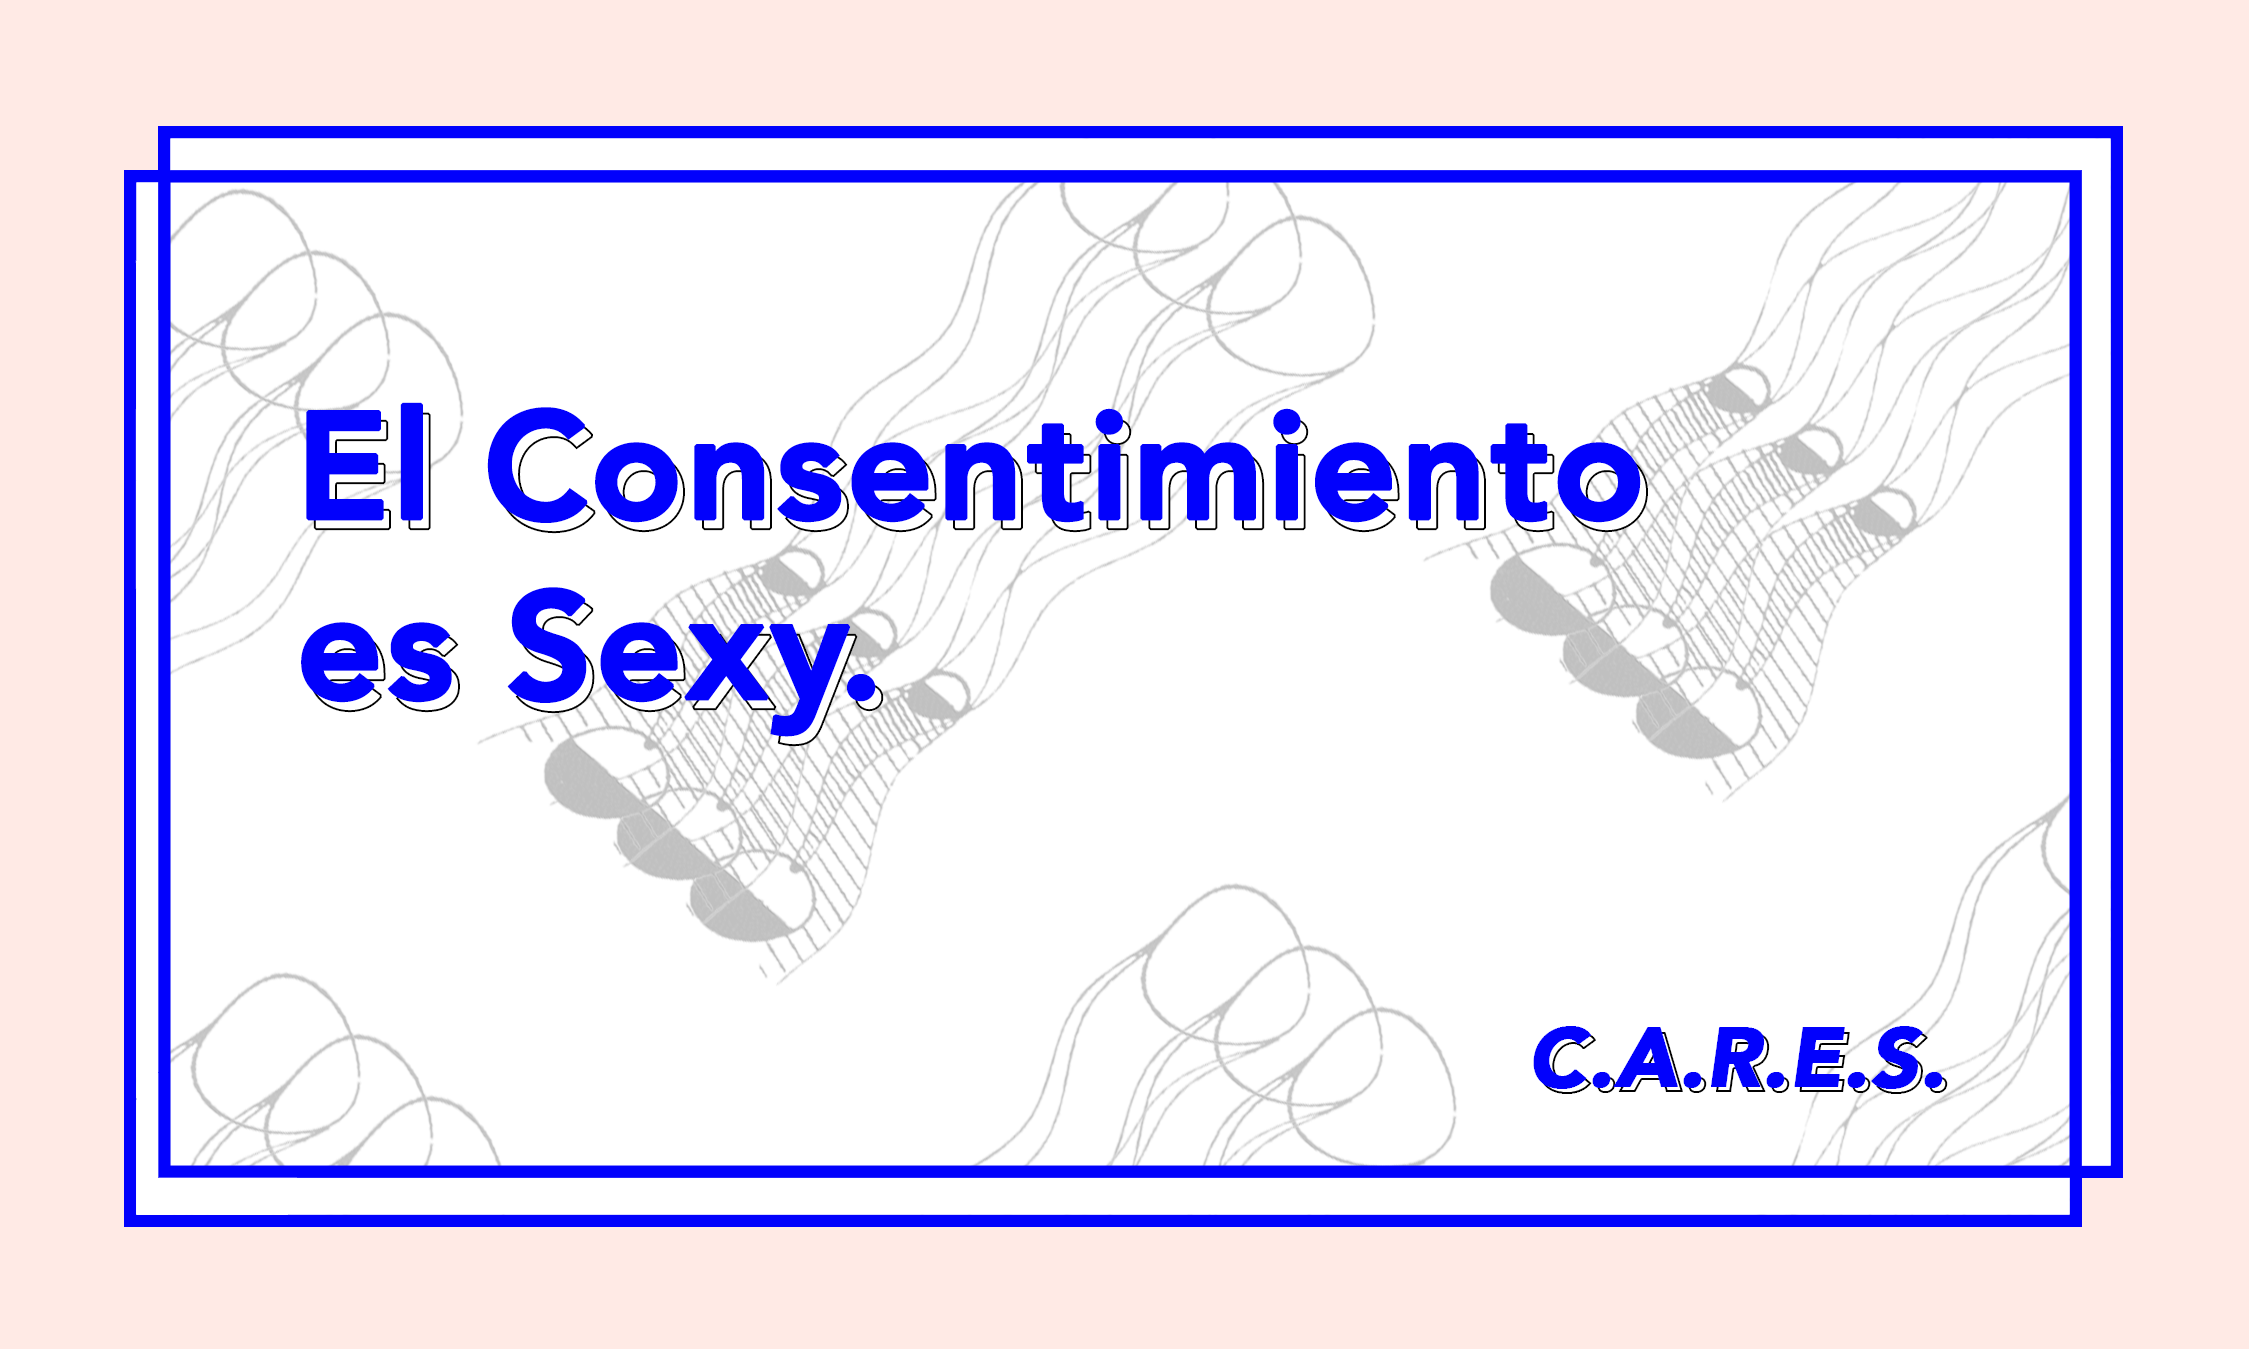 card_front_Spanish.png